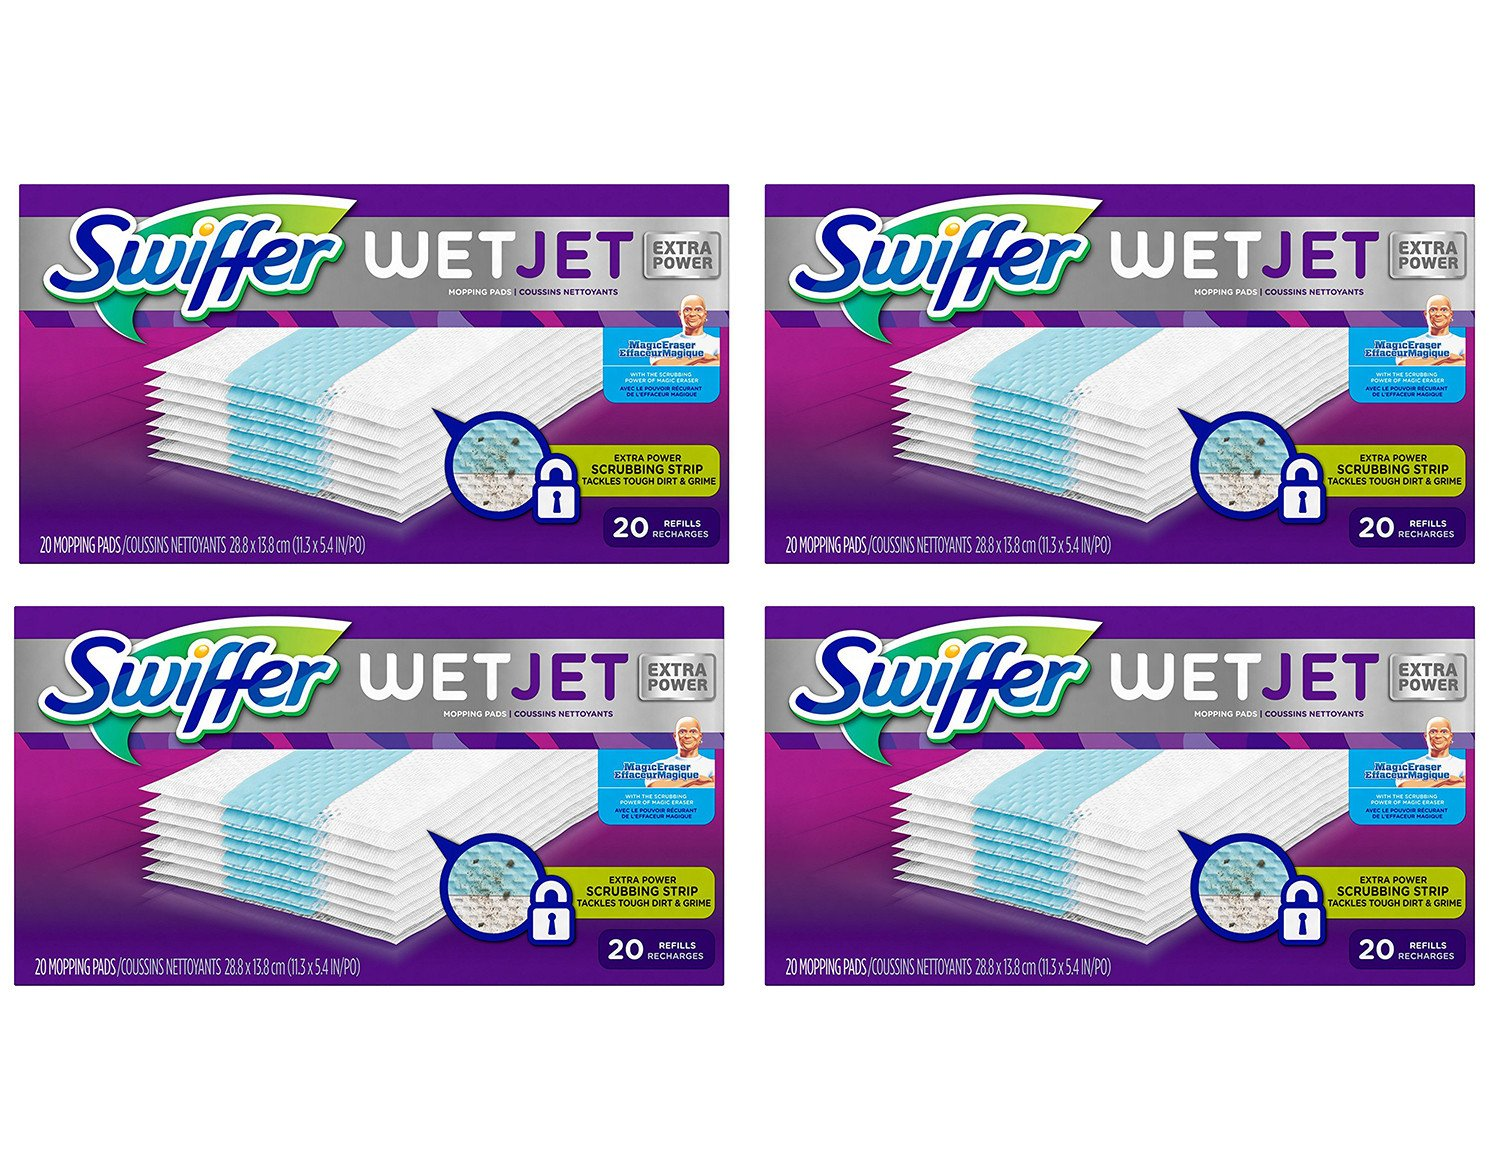 Swiffer WetJet Hardwood gHtQy Floor Spray Mop Pad Refill Extra Power 20 Count (Pack of 4) ZikZD